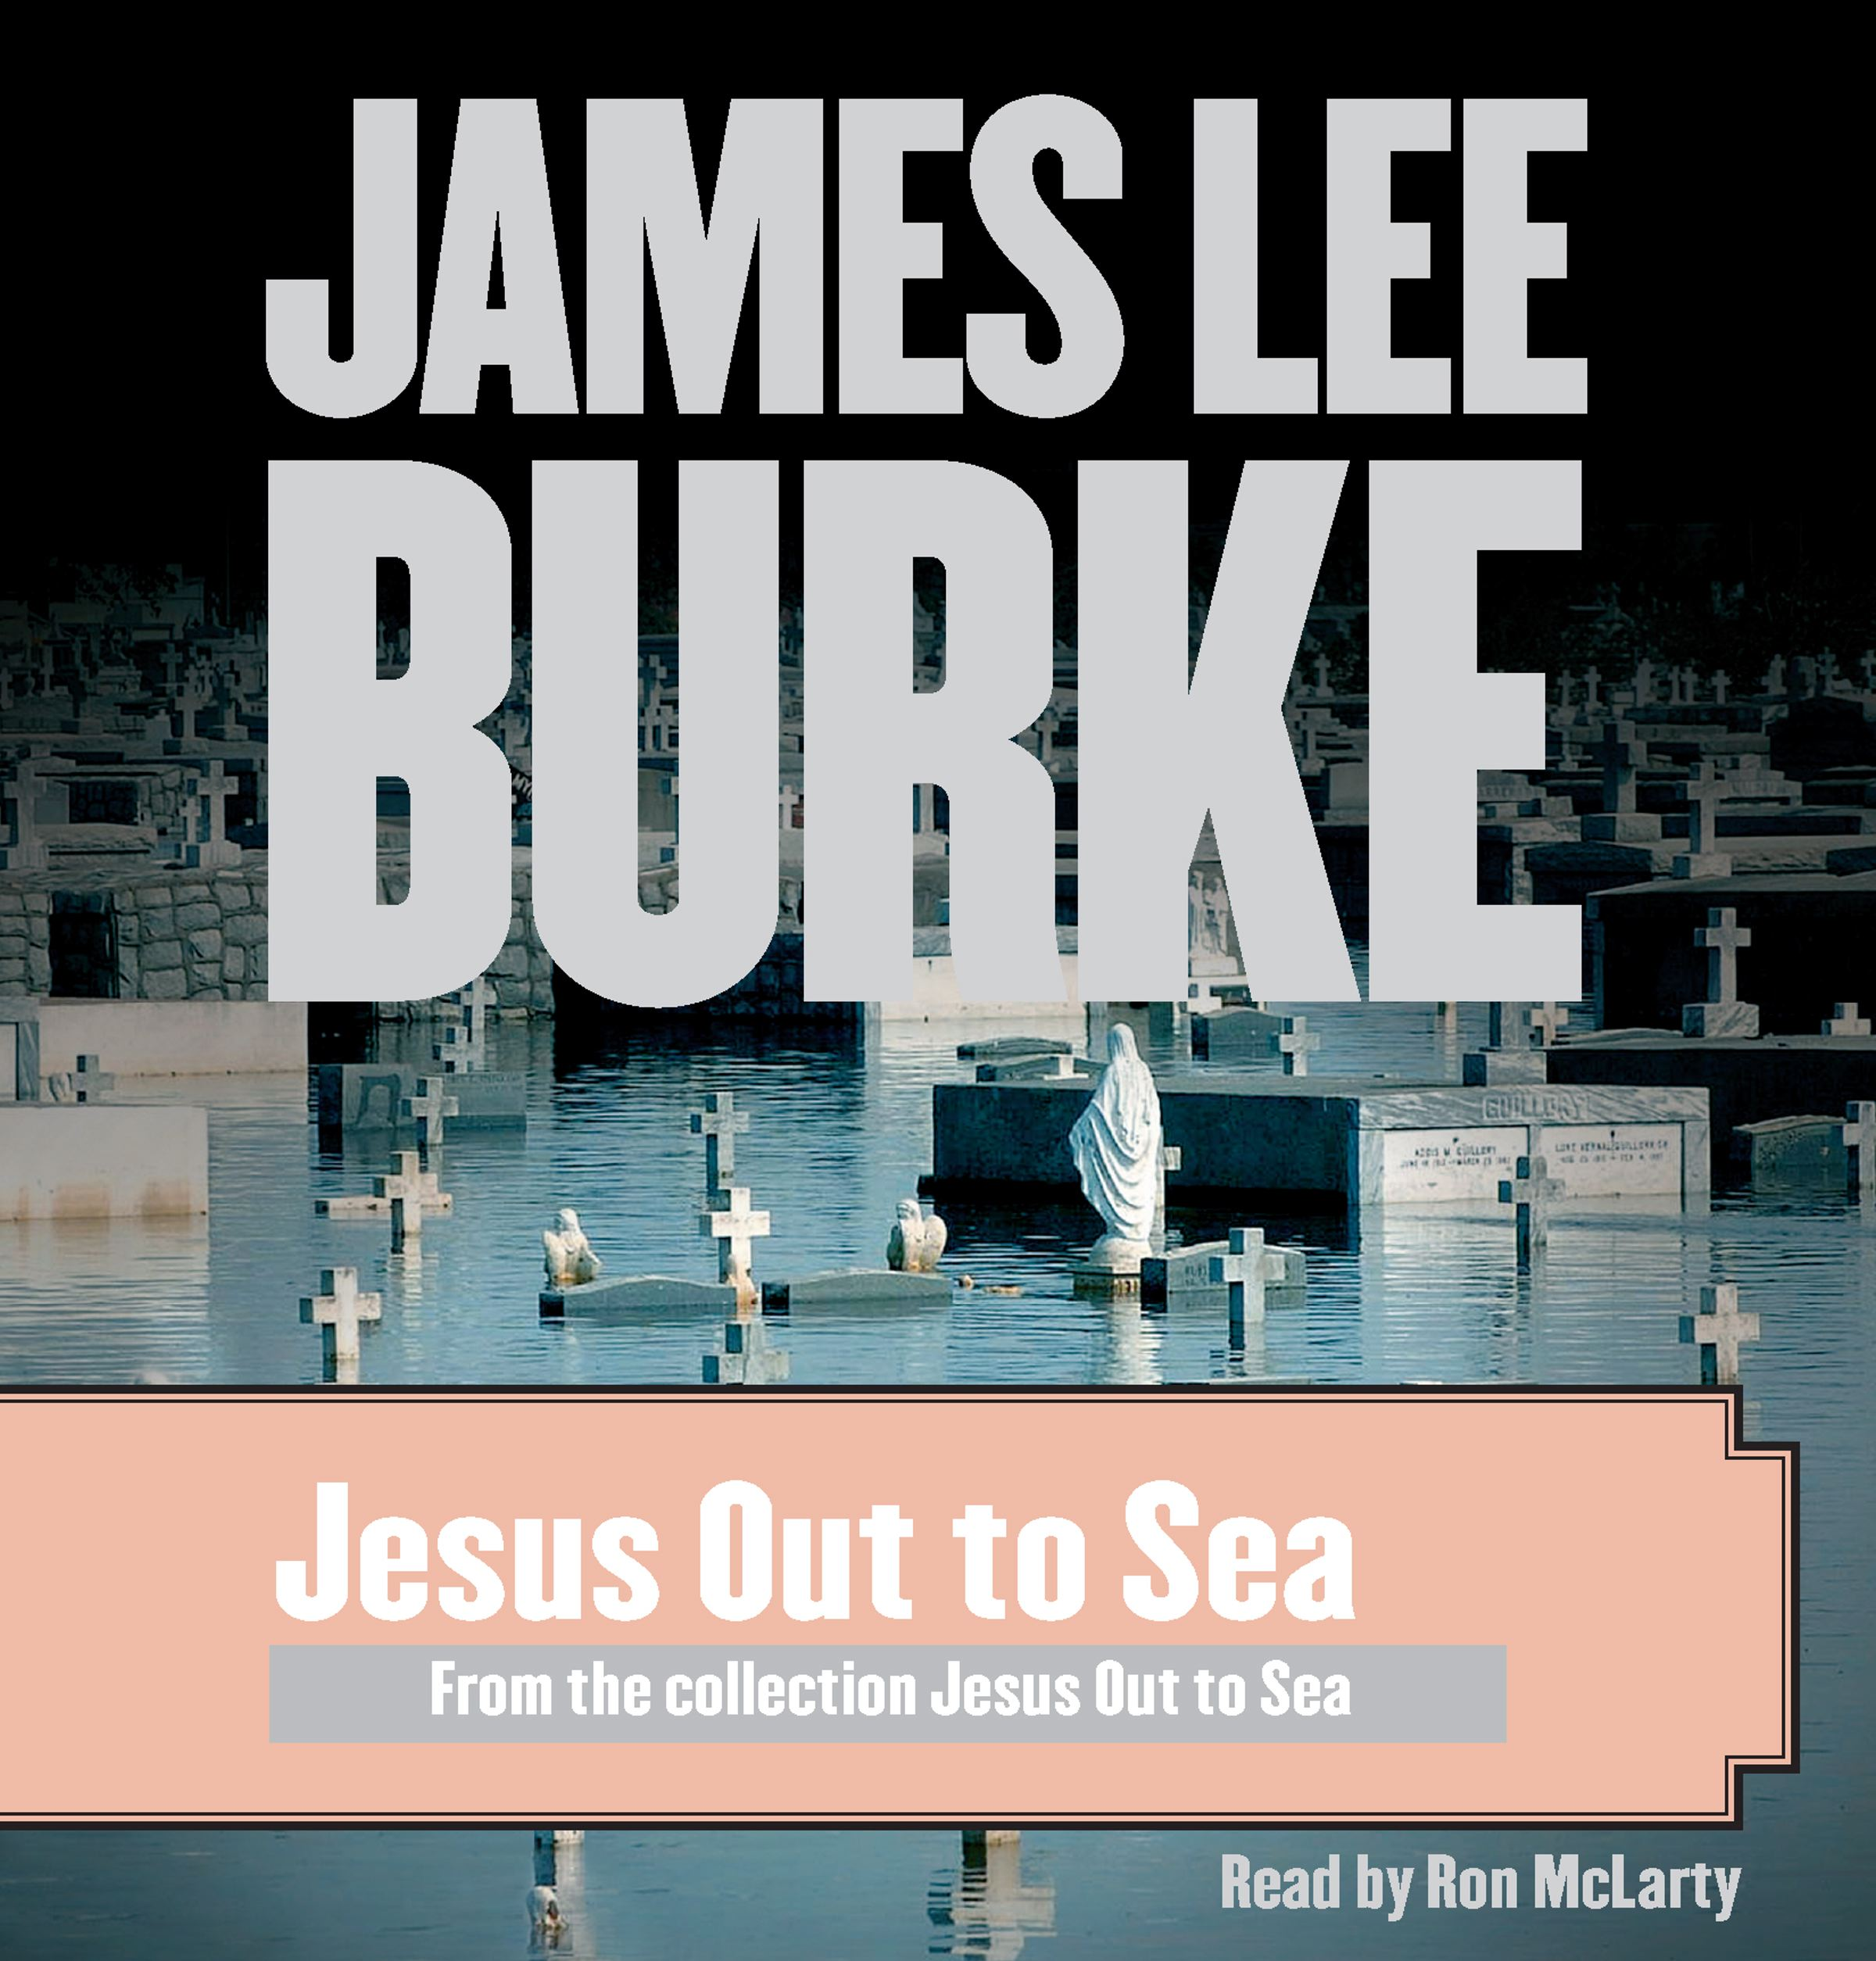 Jesus-out-to-sea-9780743571517_hr